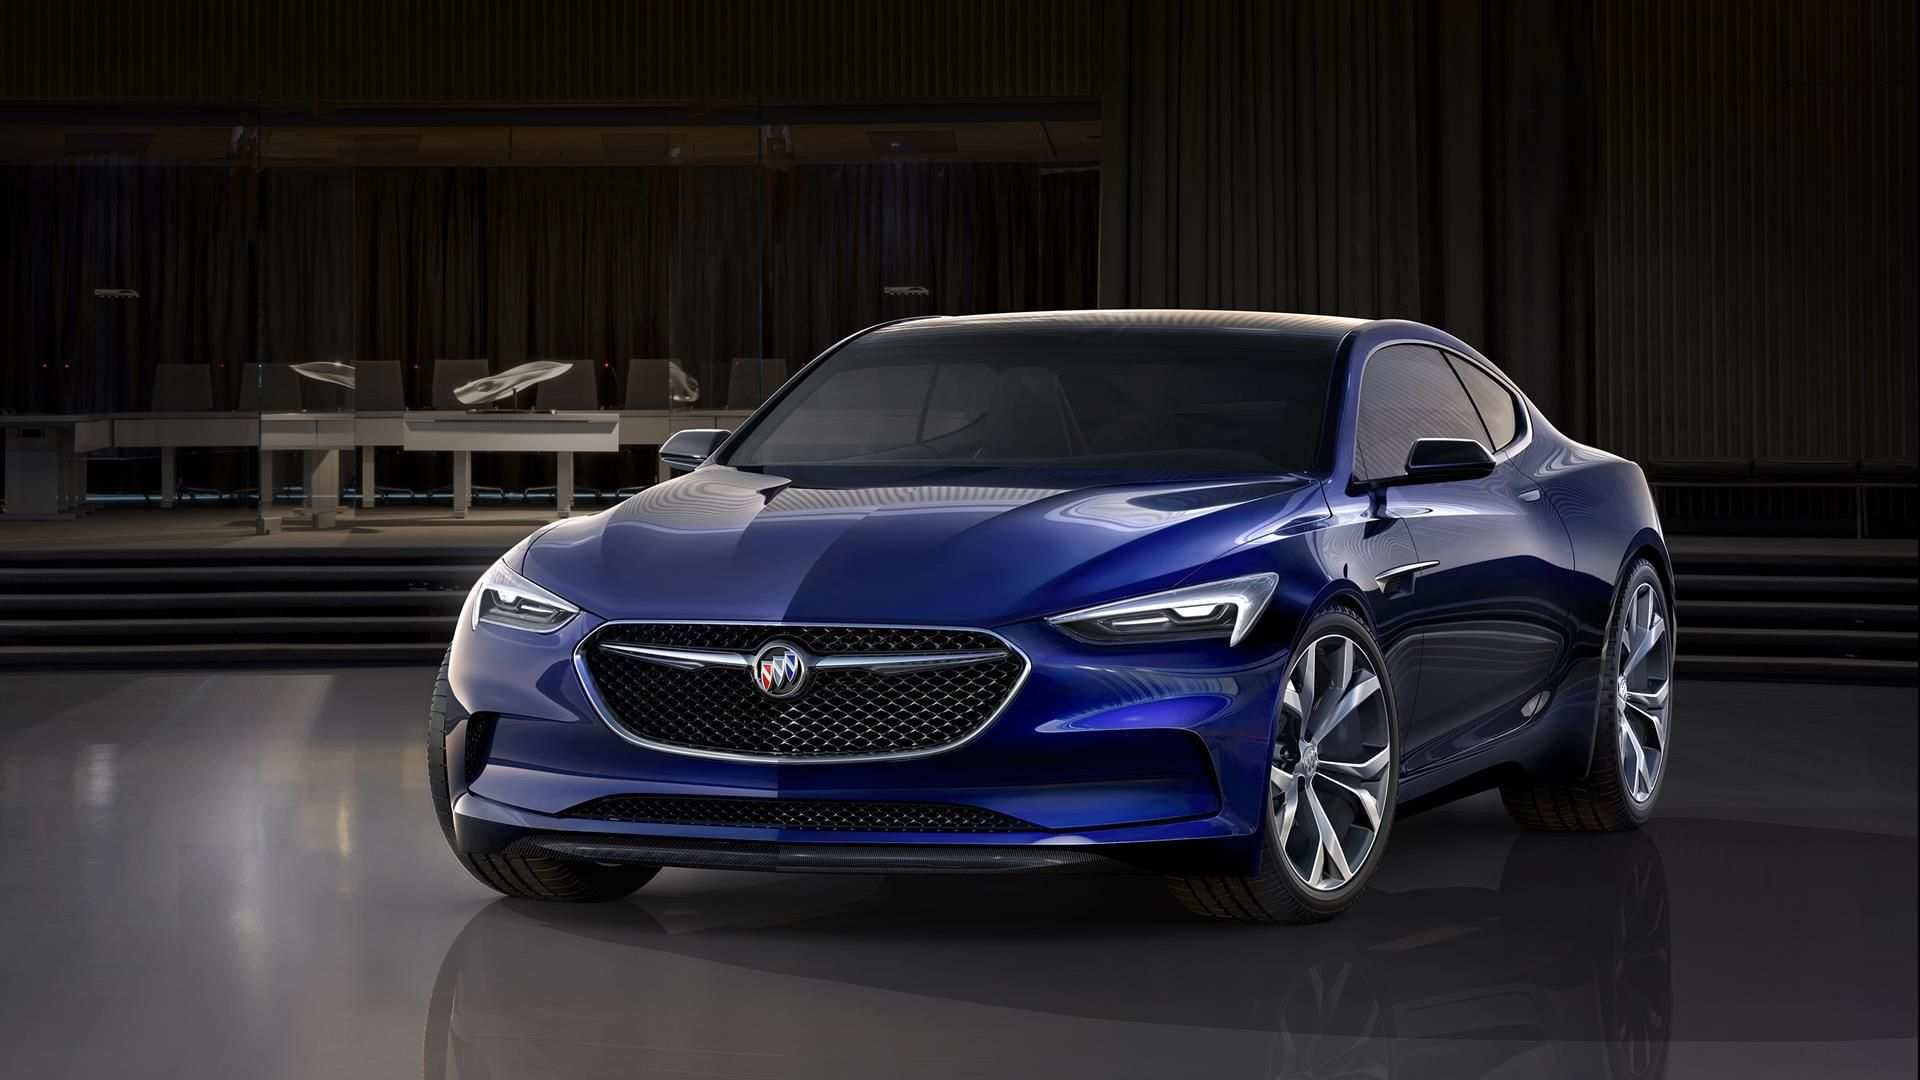 44 The Best 2020 Buick Avista Picture